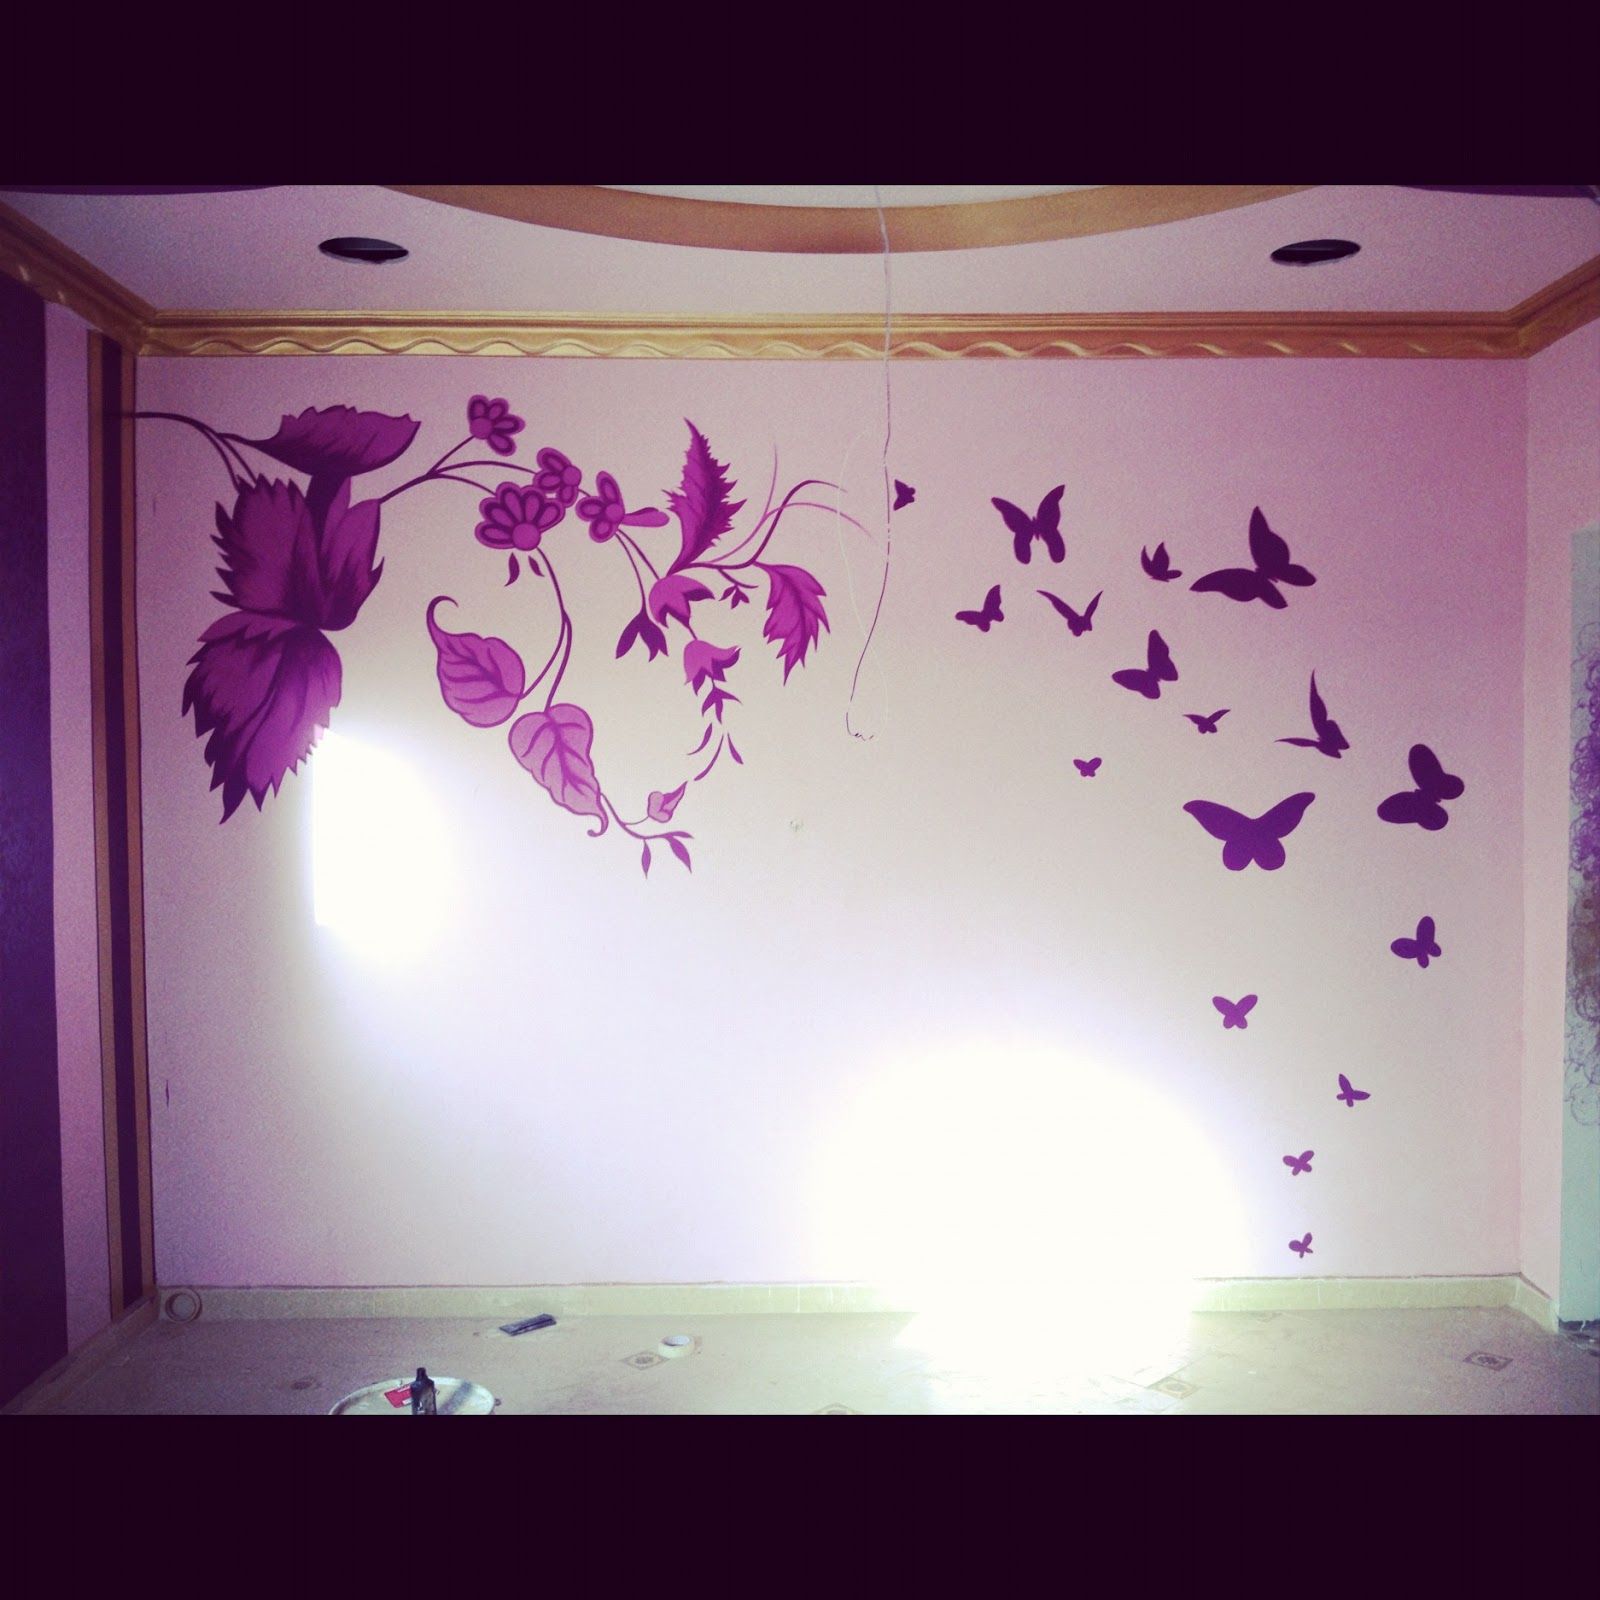 Wall Design Ideas: Stencil and hand painted wall